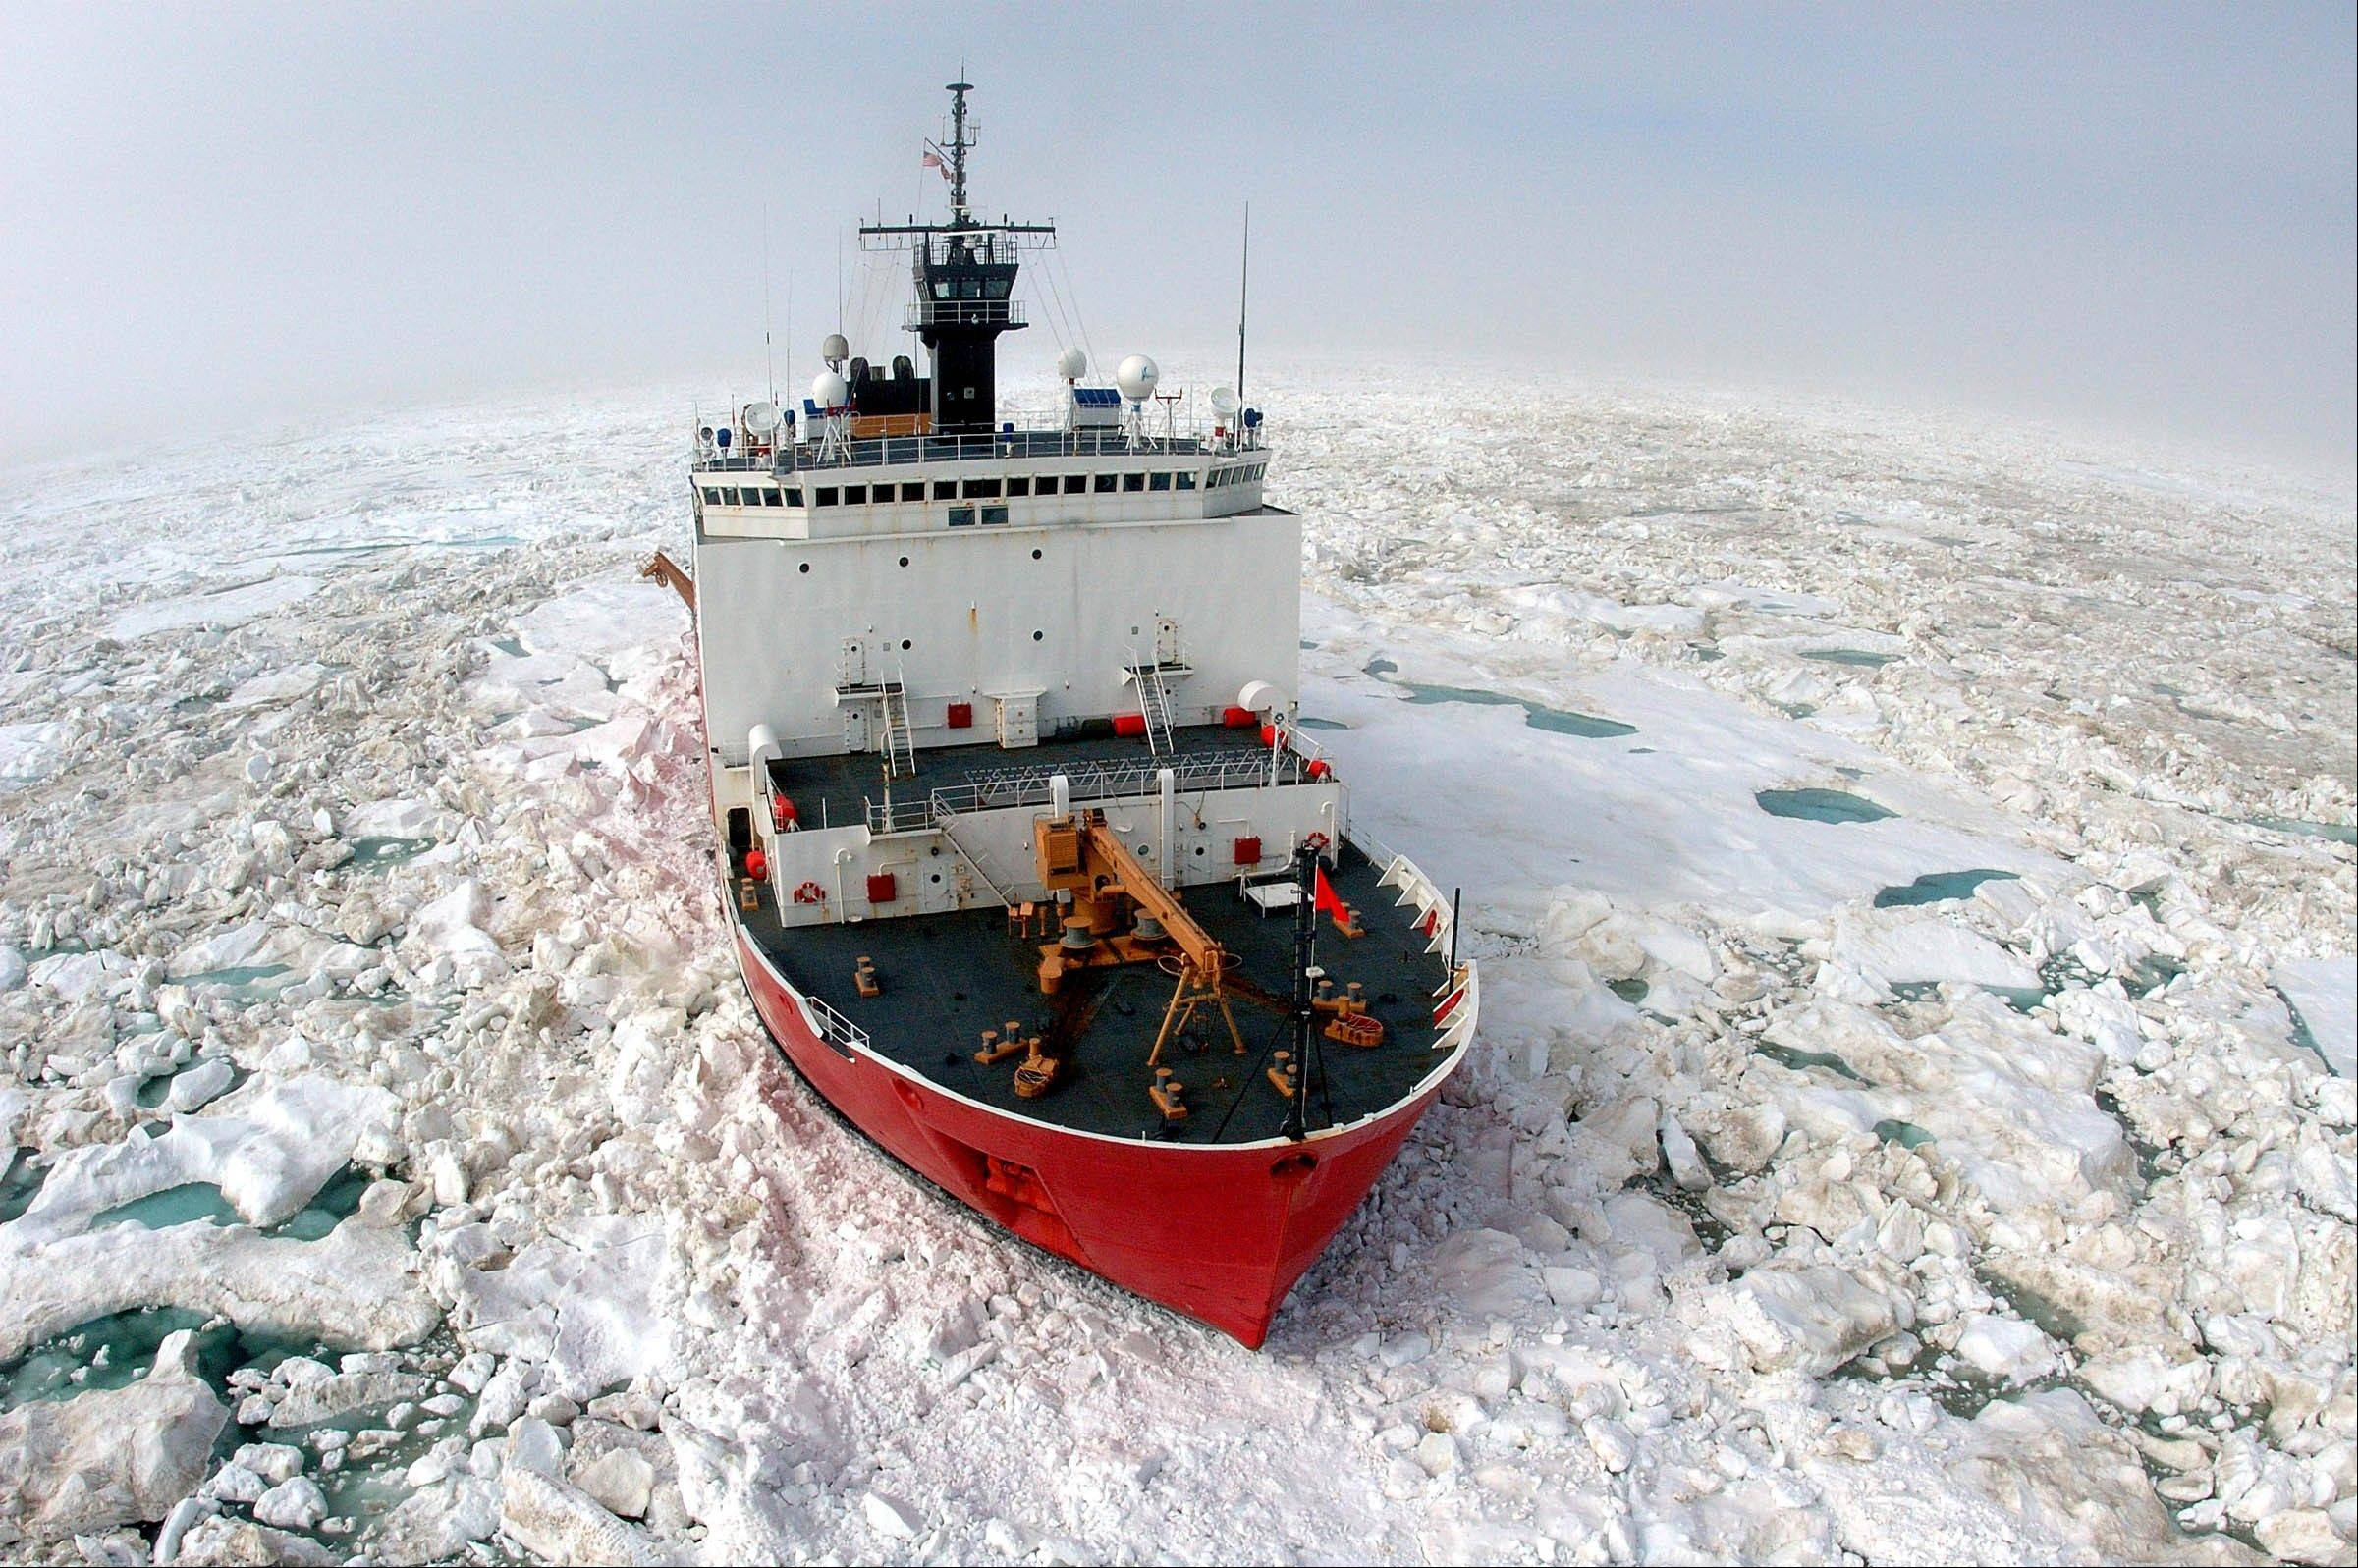 The Coast Guard Cutter Healy breaks ice in the Arctic Ocean near Barrow, Alaska.